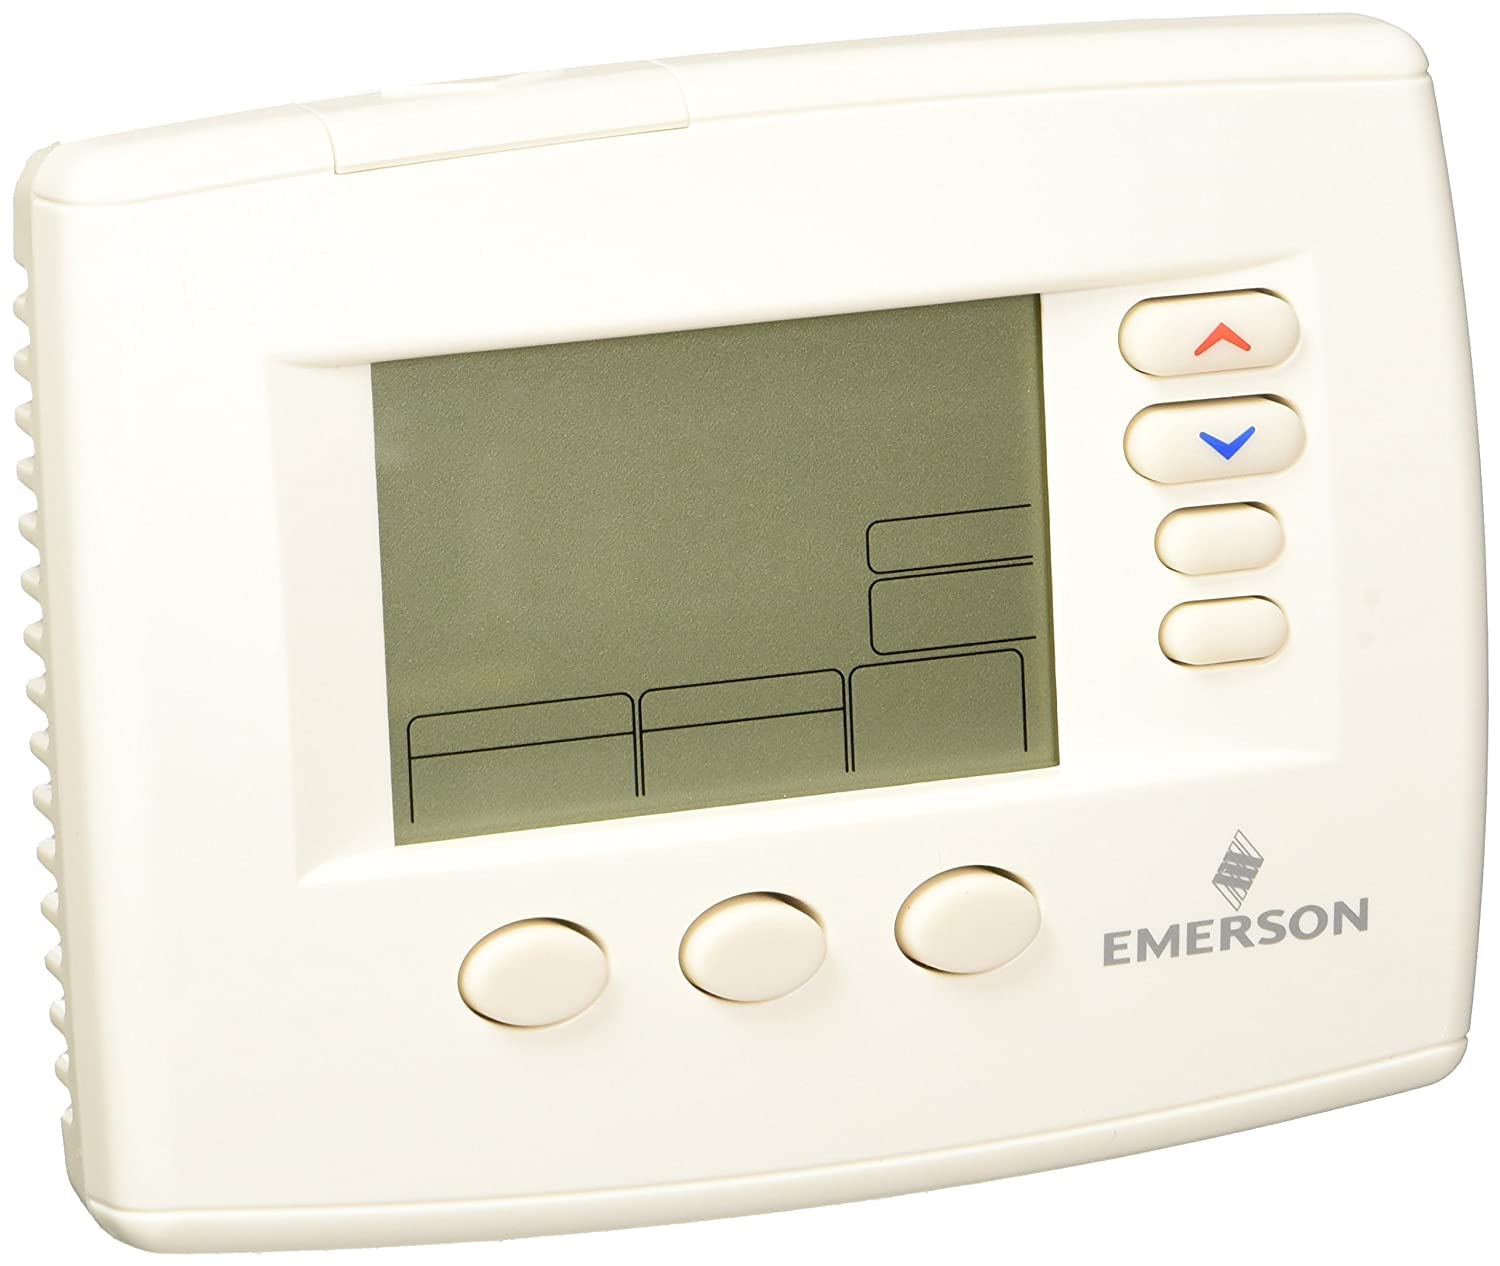 Digital Thermostat Wiring Diagram from wiringall.com